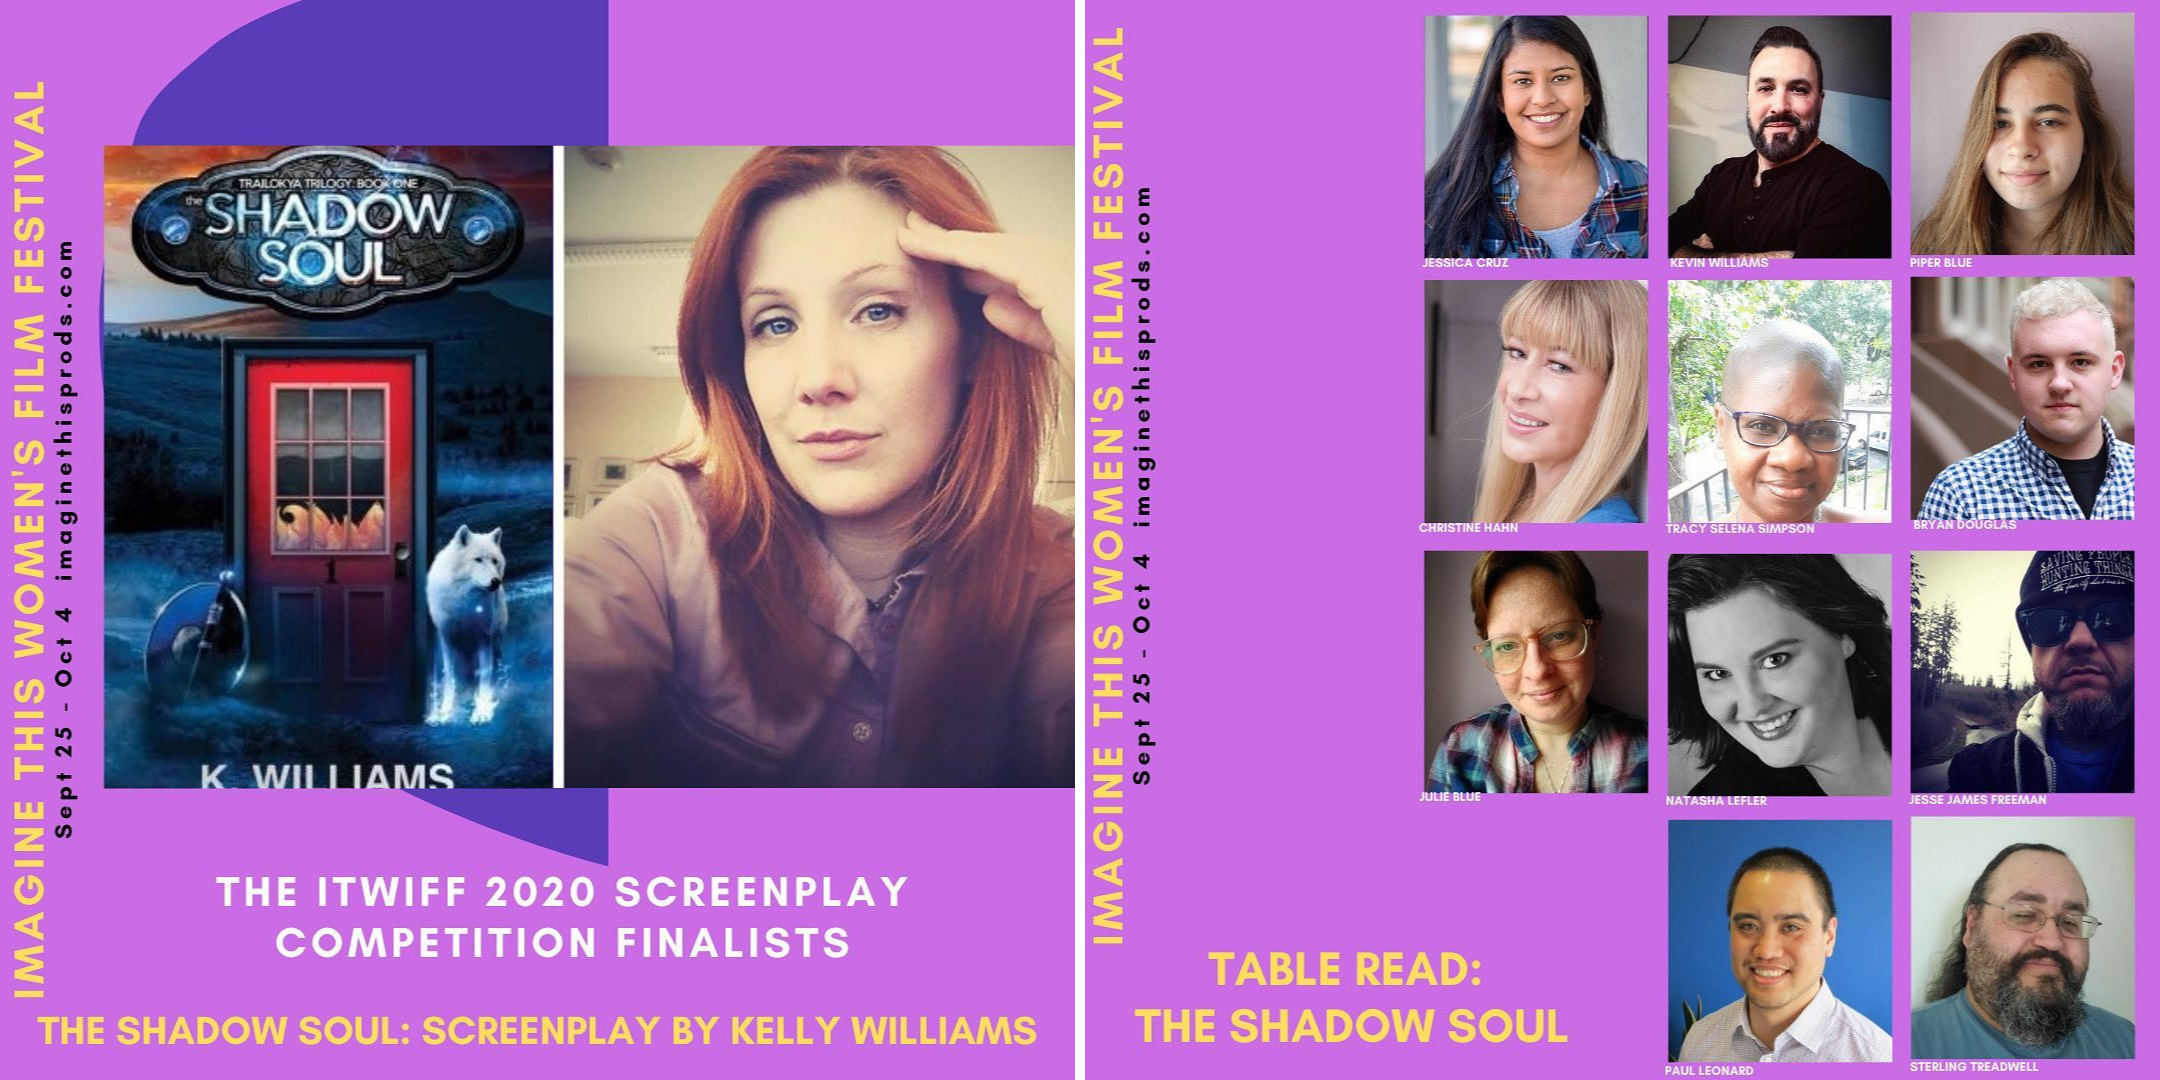 Image of K.Williams and the Shadow Soul Book, second image of cast of table reading of the shadow soul